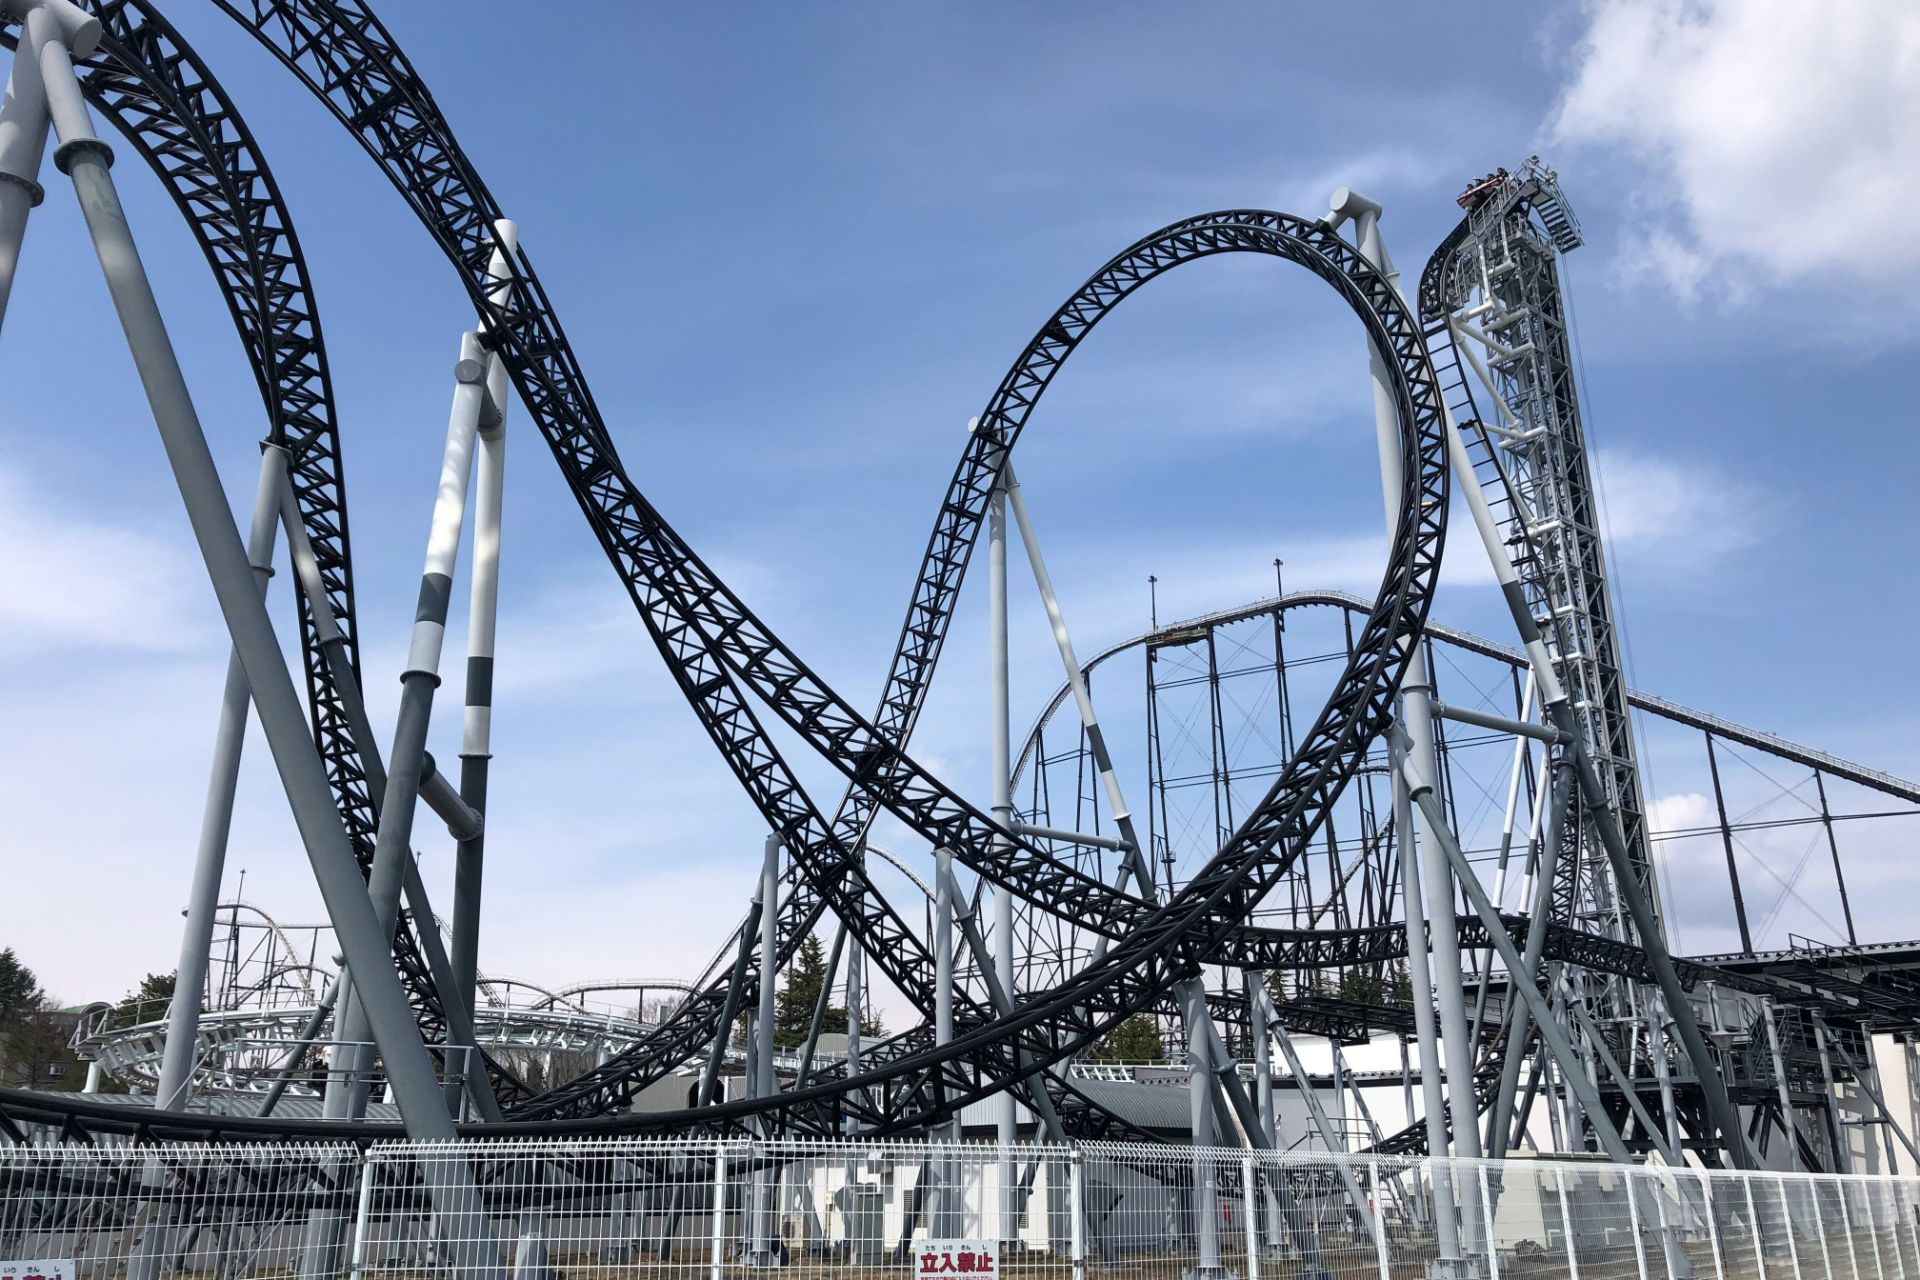 steepest-rollercoaster-in-the-world-japan-takabisha